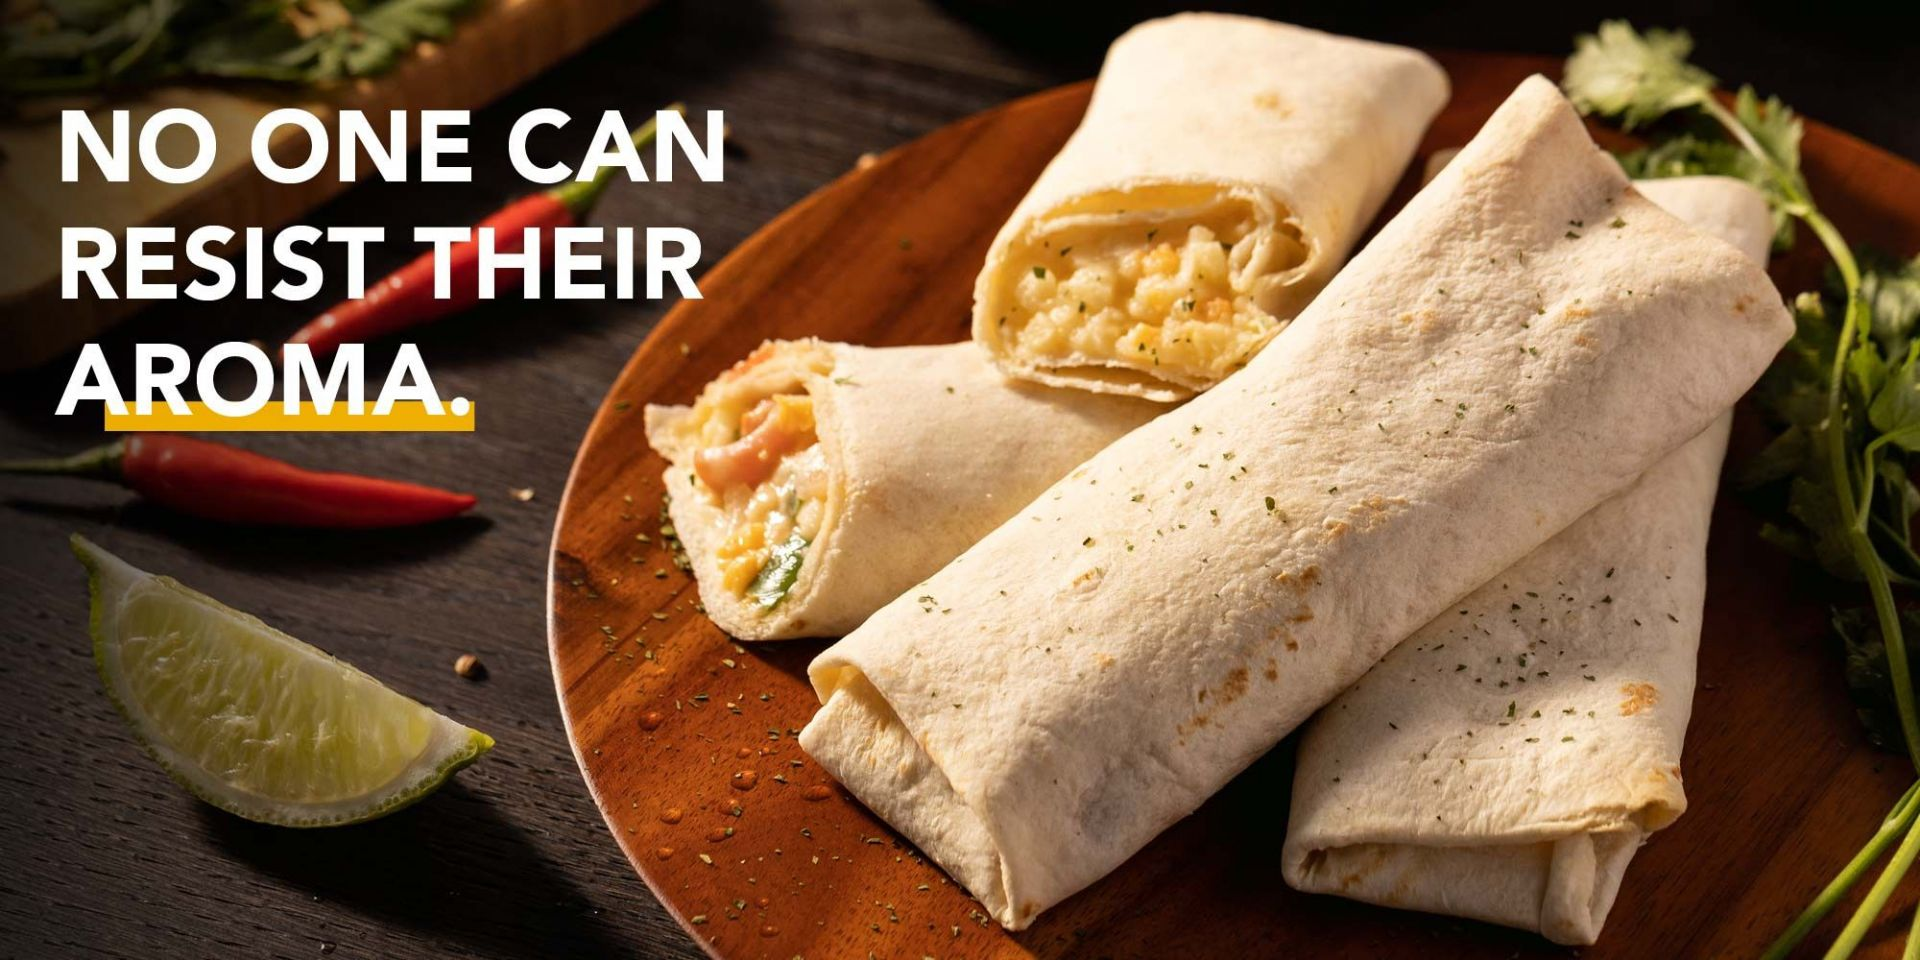 【Food Industry Trends】Flatbreads are beloved by the food takeout and delivery market.